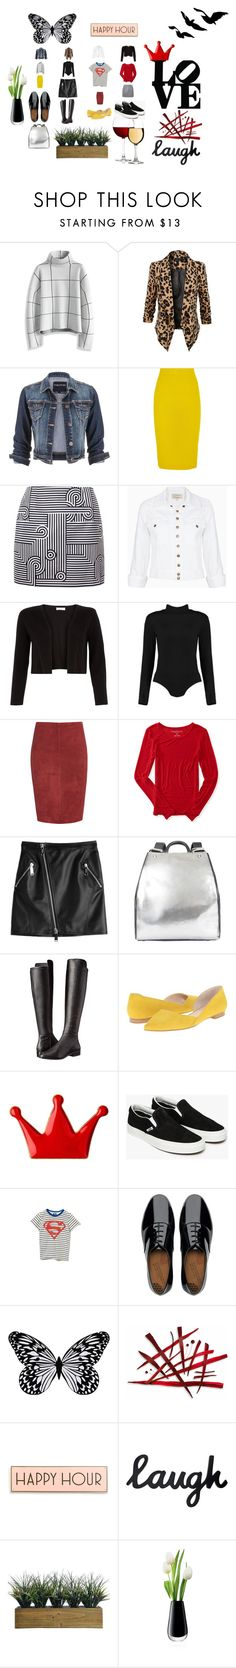 """HAPPY HOUR"" by rosastreet on Polyvore featuring moda, Chicwish, LE3NO, maurices, J.Crew, Victoria, Victoria Beckham, Current/Elliott, Monsoon, Jitrois e Aéropostale"